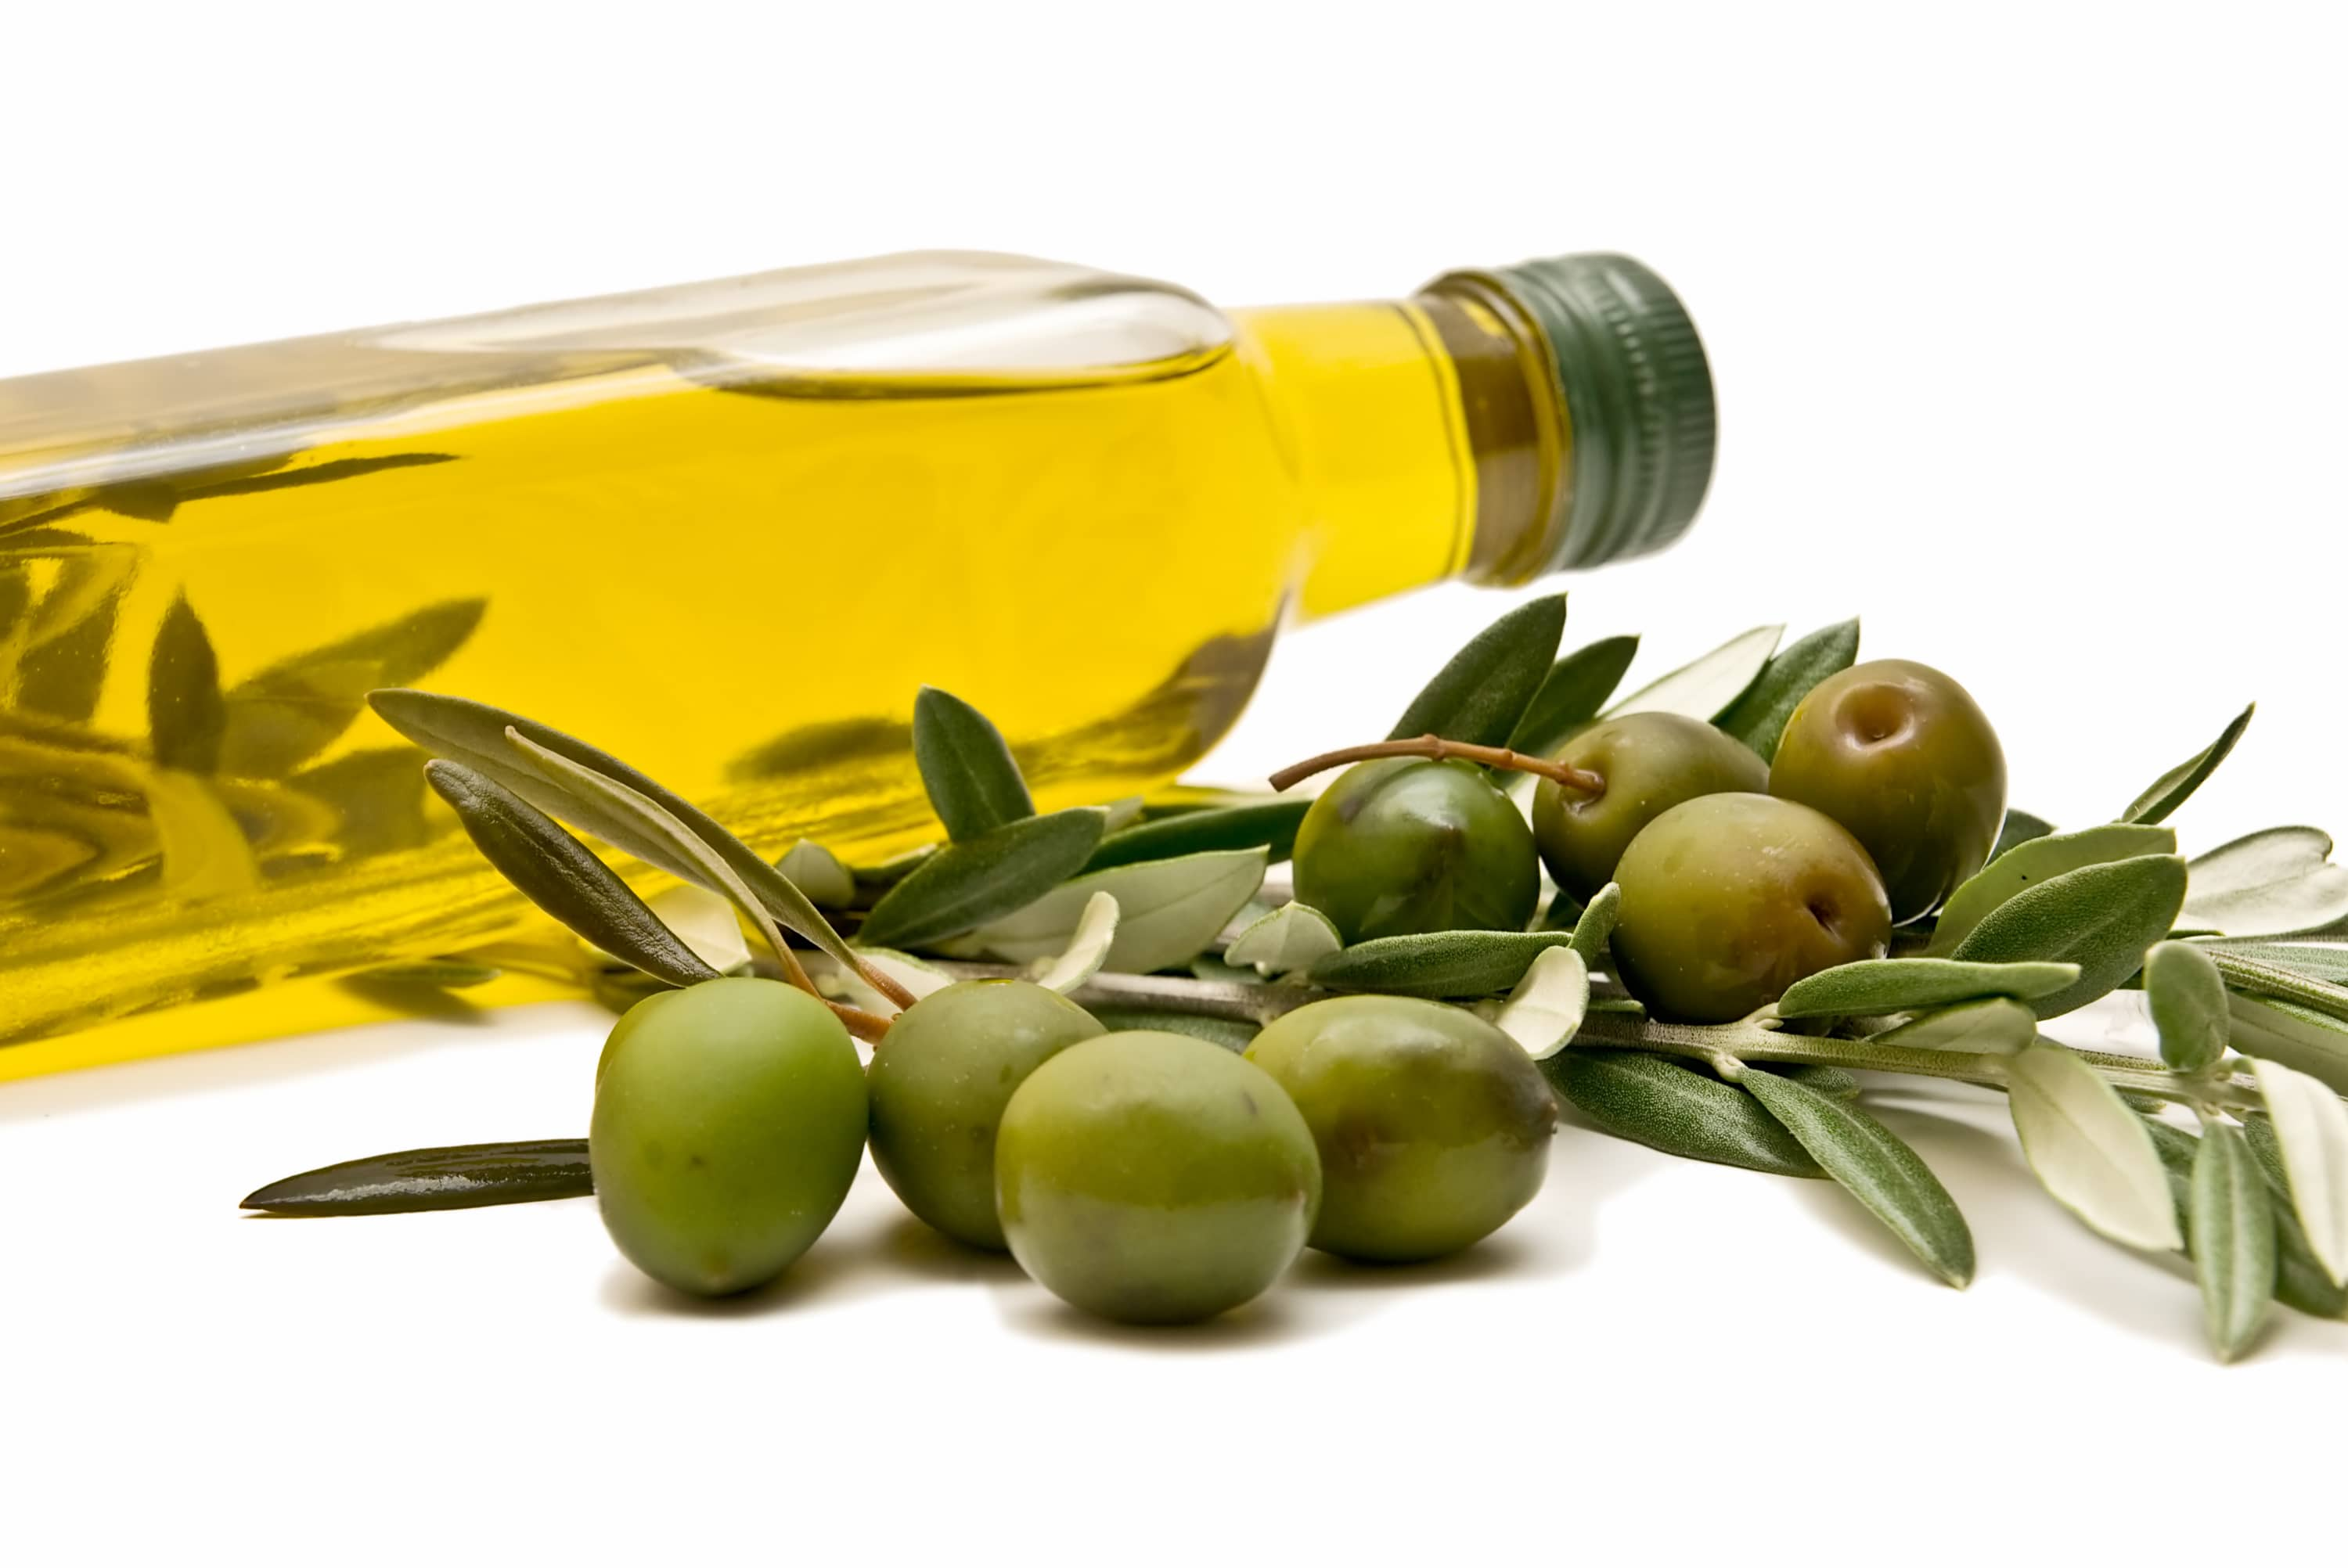 7 amazing olive oil benefits and uses for hair, skin, face